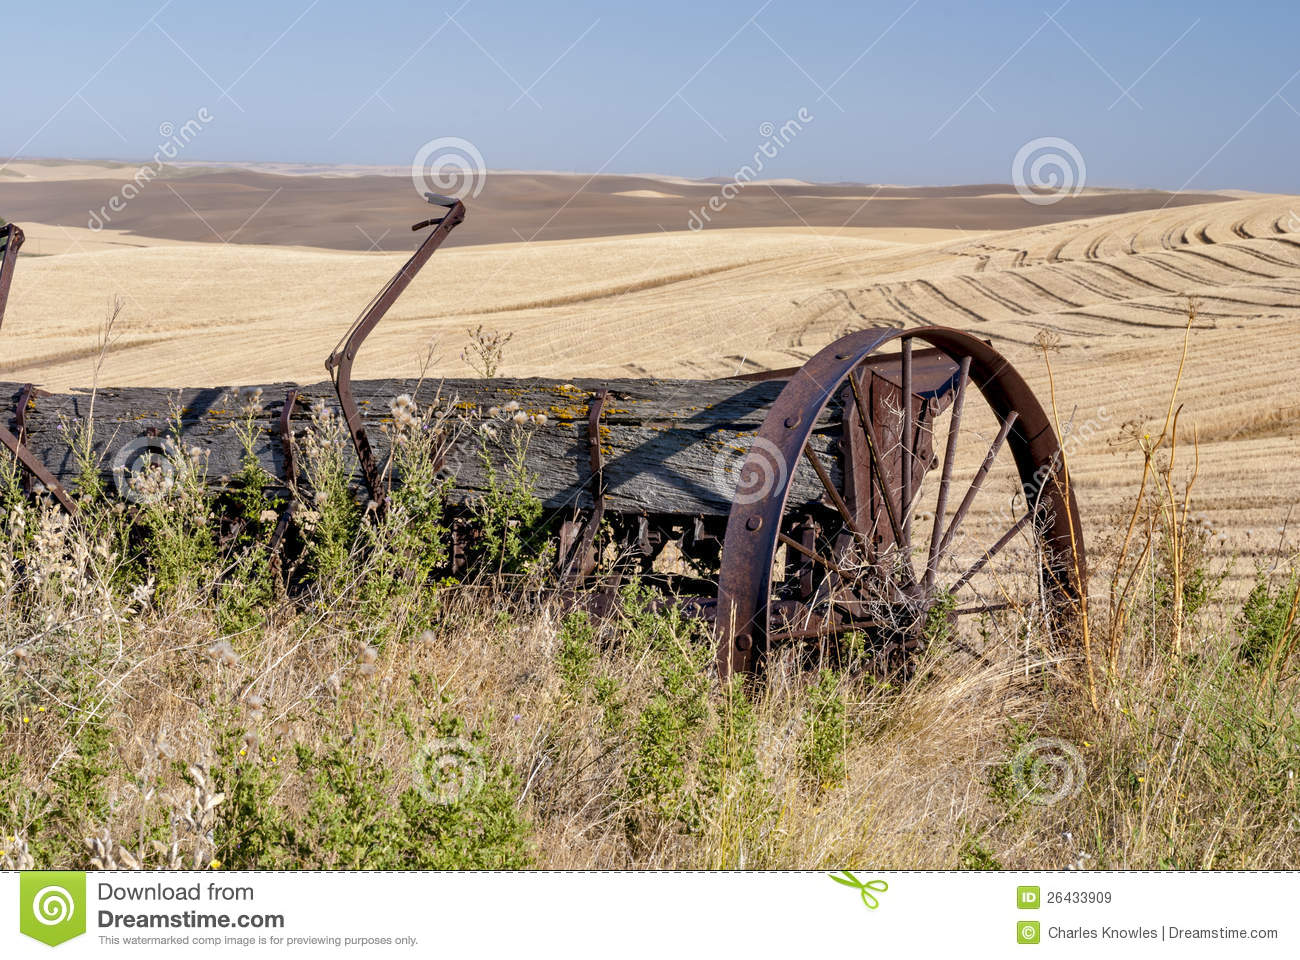 Old weathered farm equipment in wheatfields